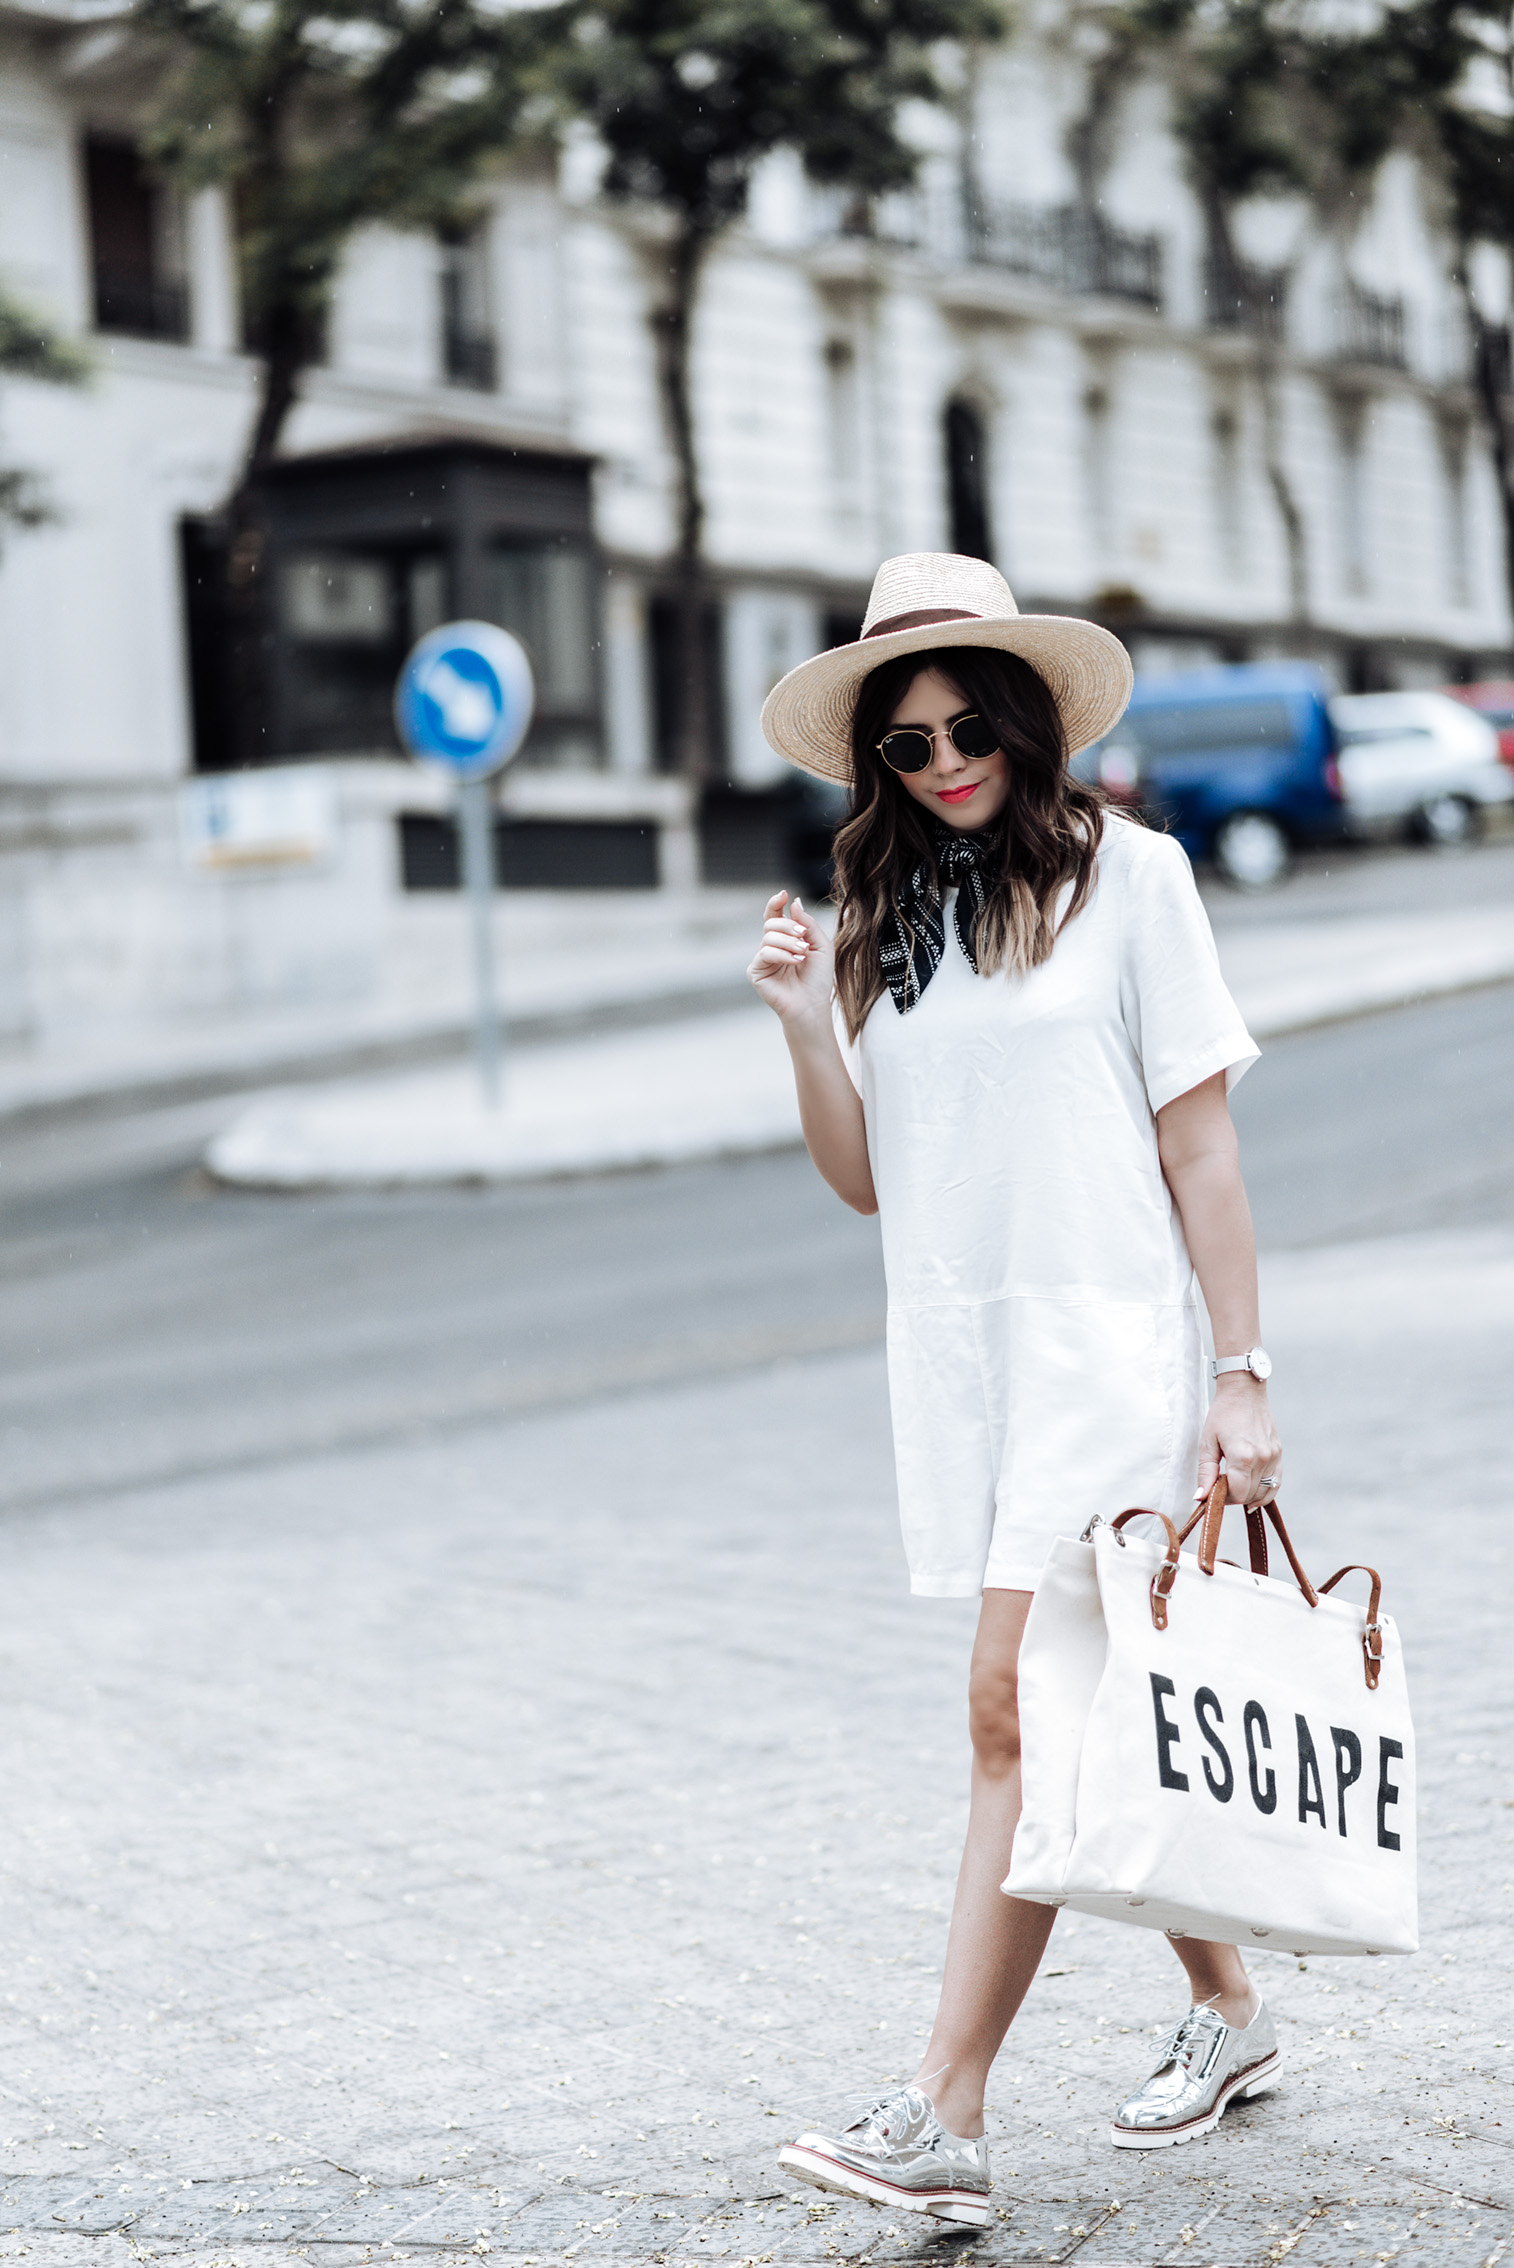 Tiffany Jais Houston fashion and lifestyle blogger | The perfect travel bag, travel bag for women, travel outfit women, brixton willow hat, Forestbound ESCAPE bag, silver oxfords,